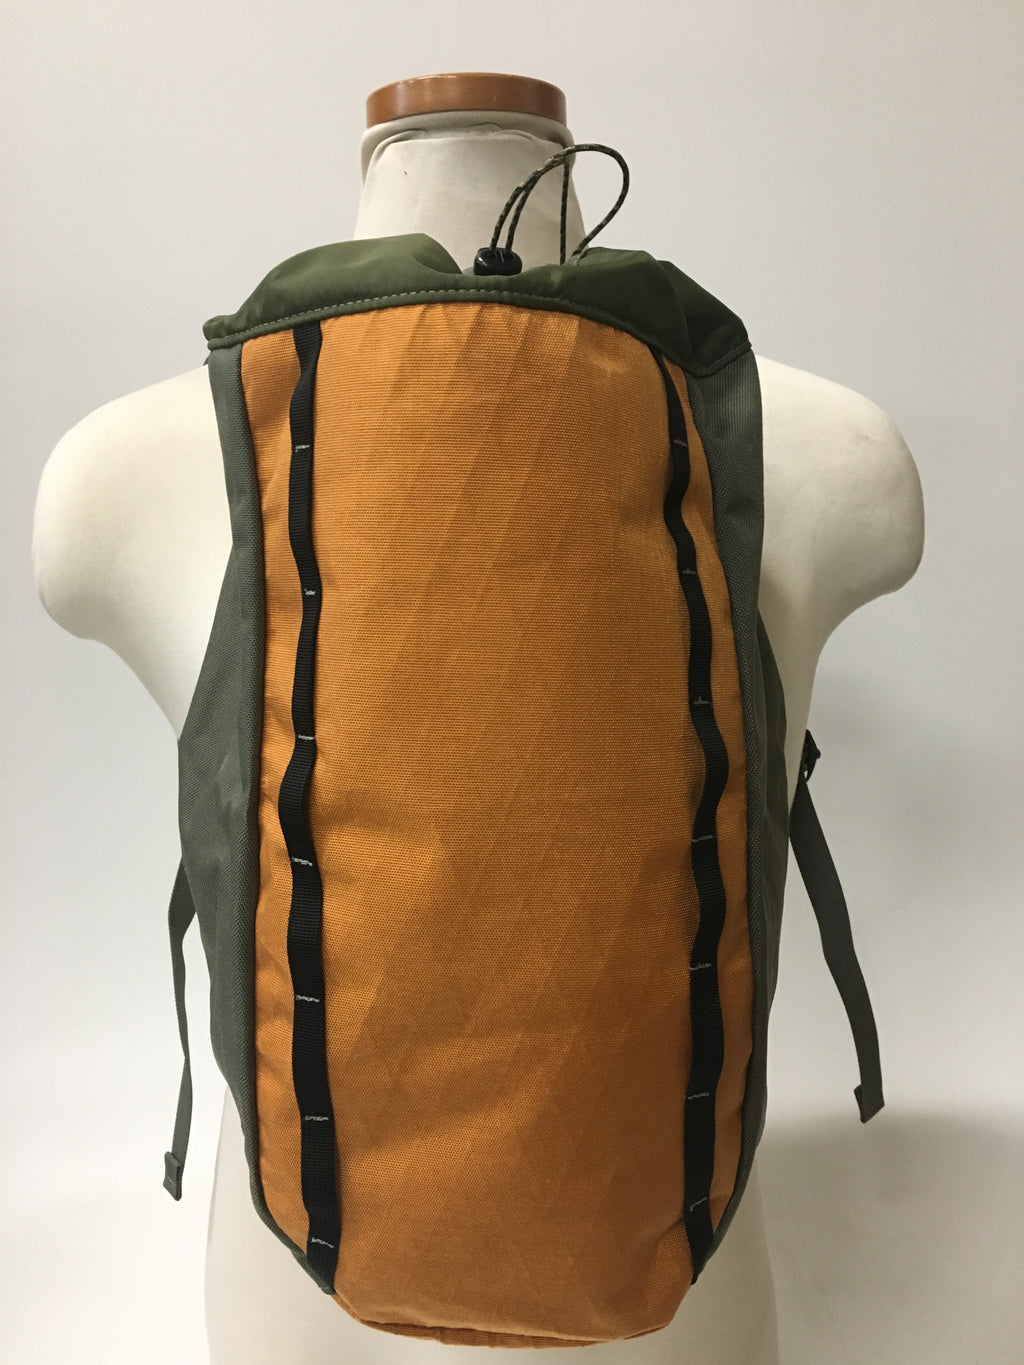 LUSB171 Ultralight Day Pack Harvest/Olive Front View